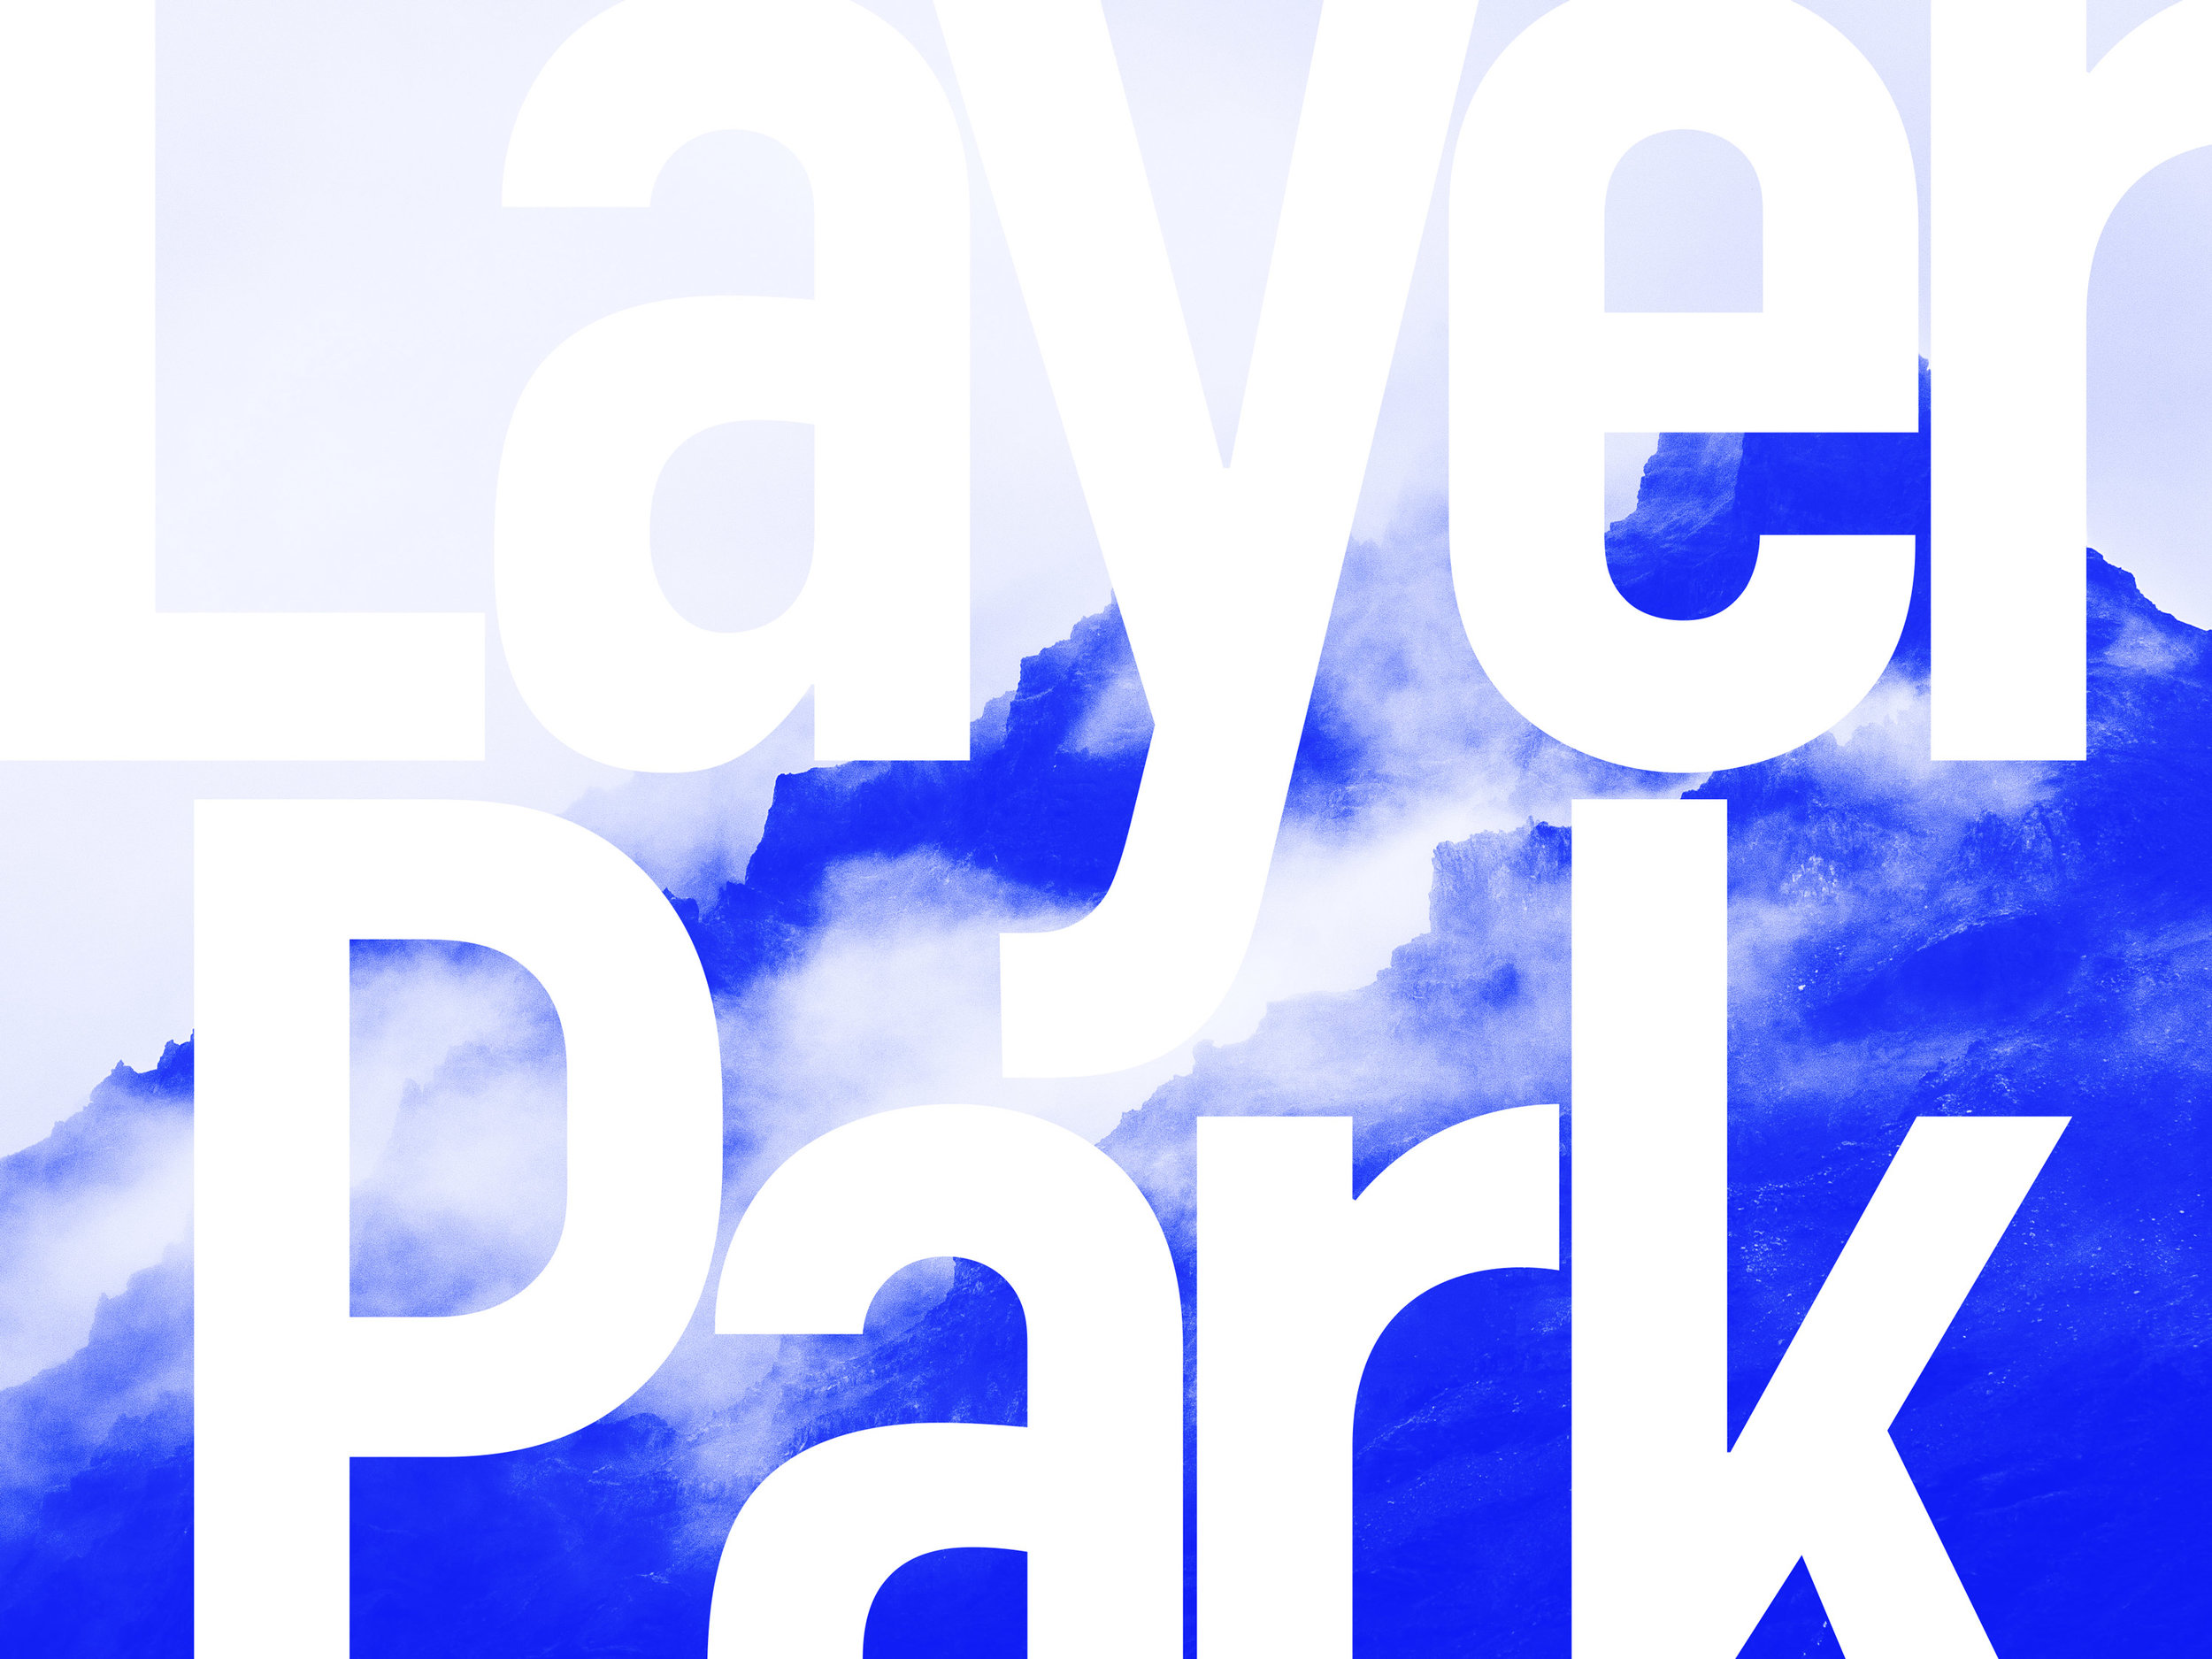 layer-park-hero.jpg